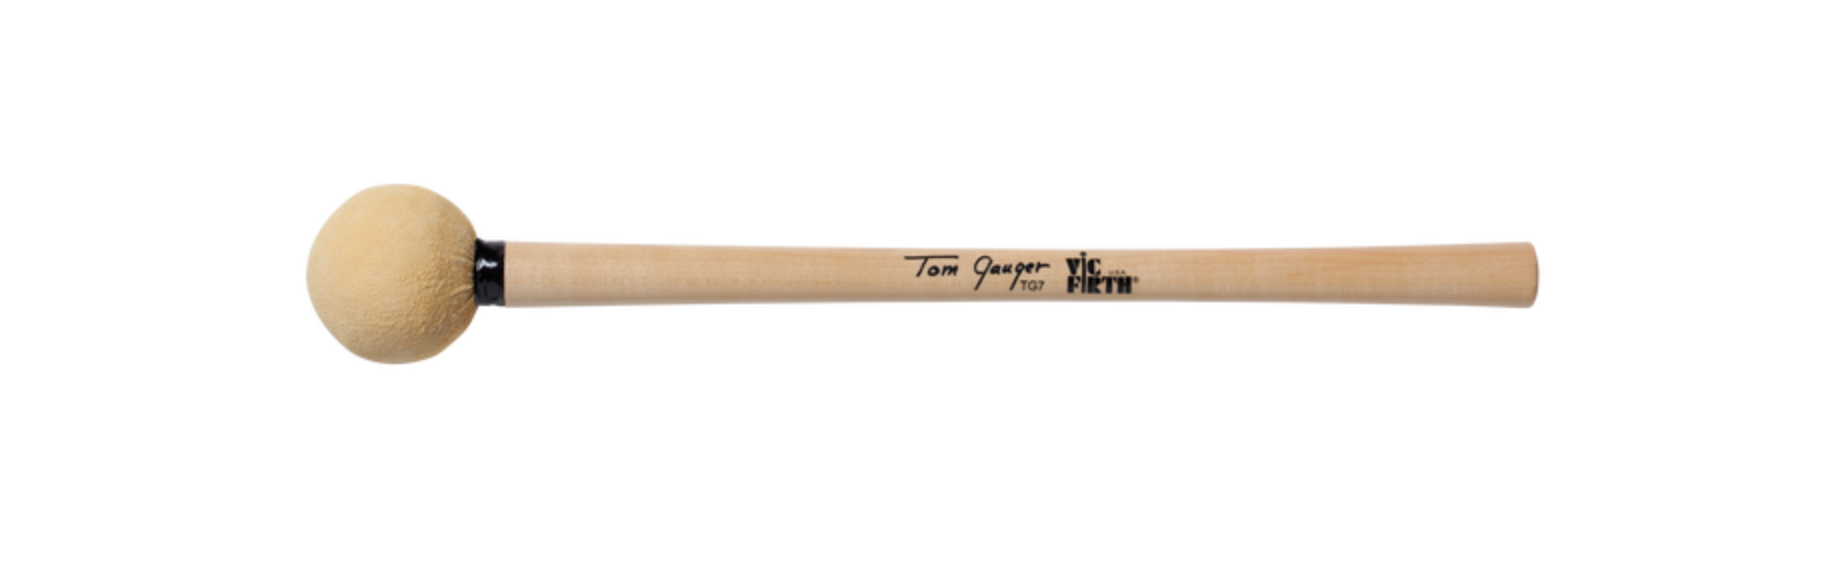 Vic Firth TG07 Ultra Staccato